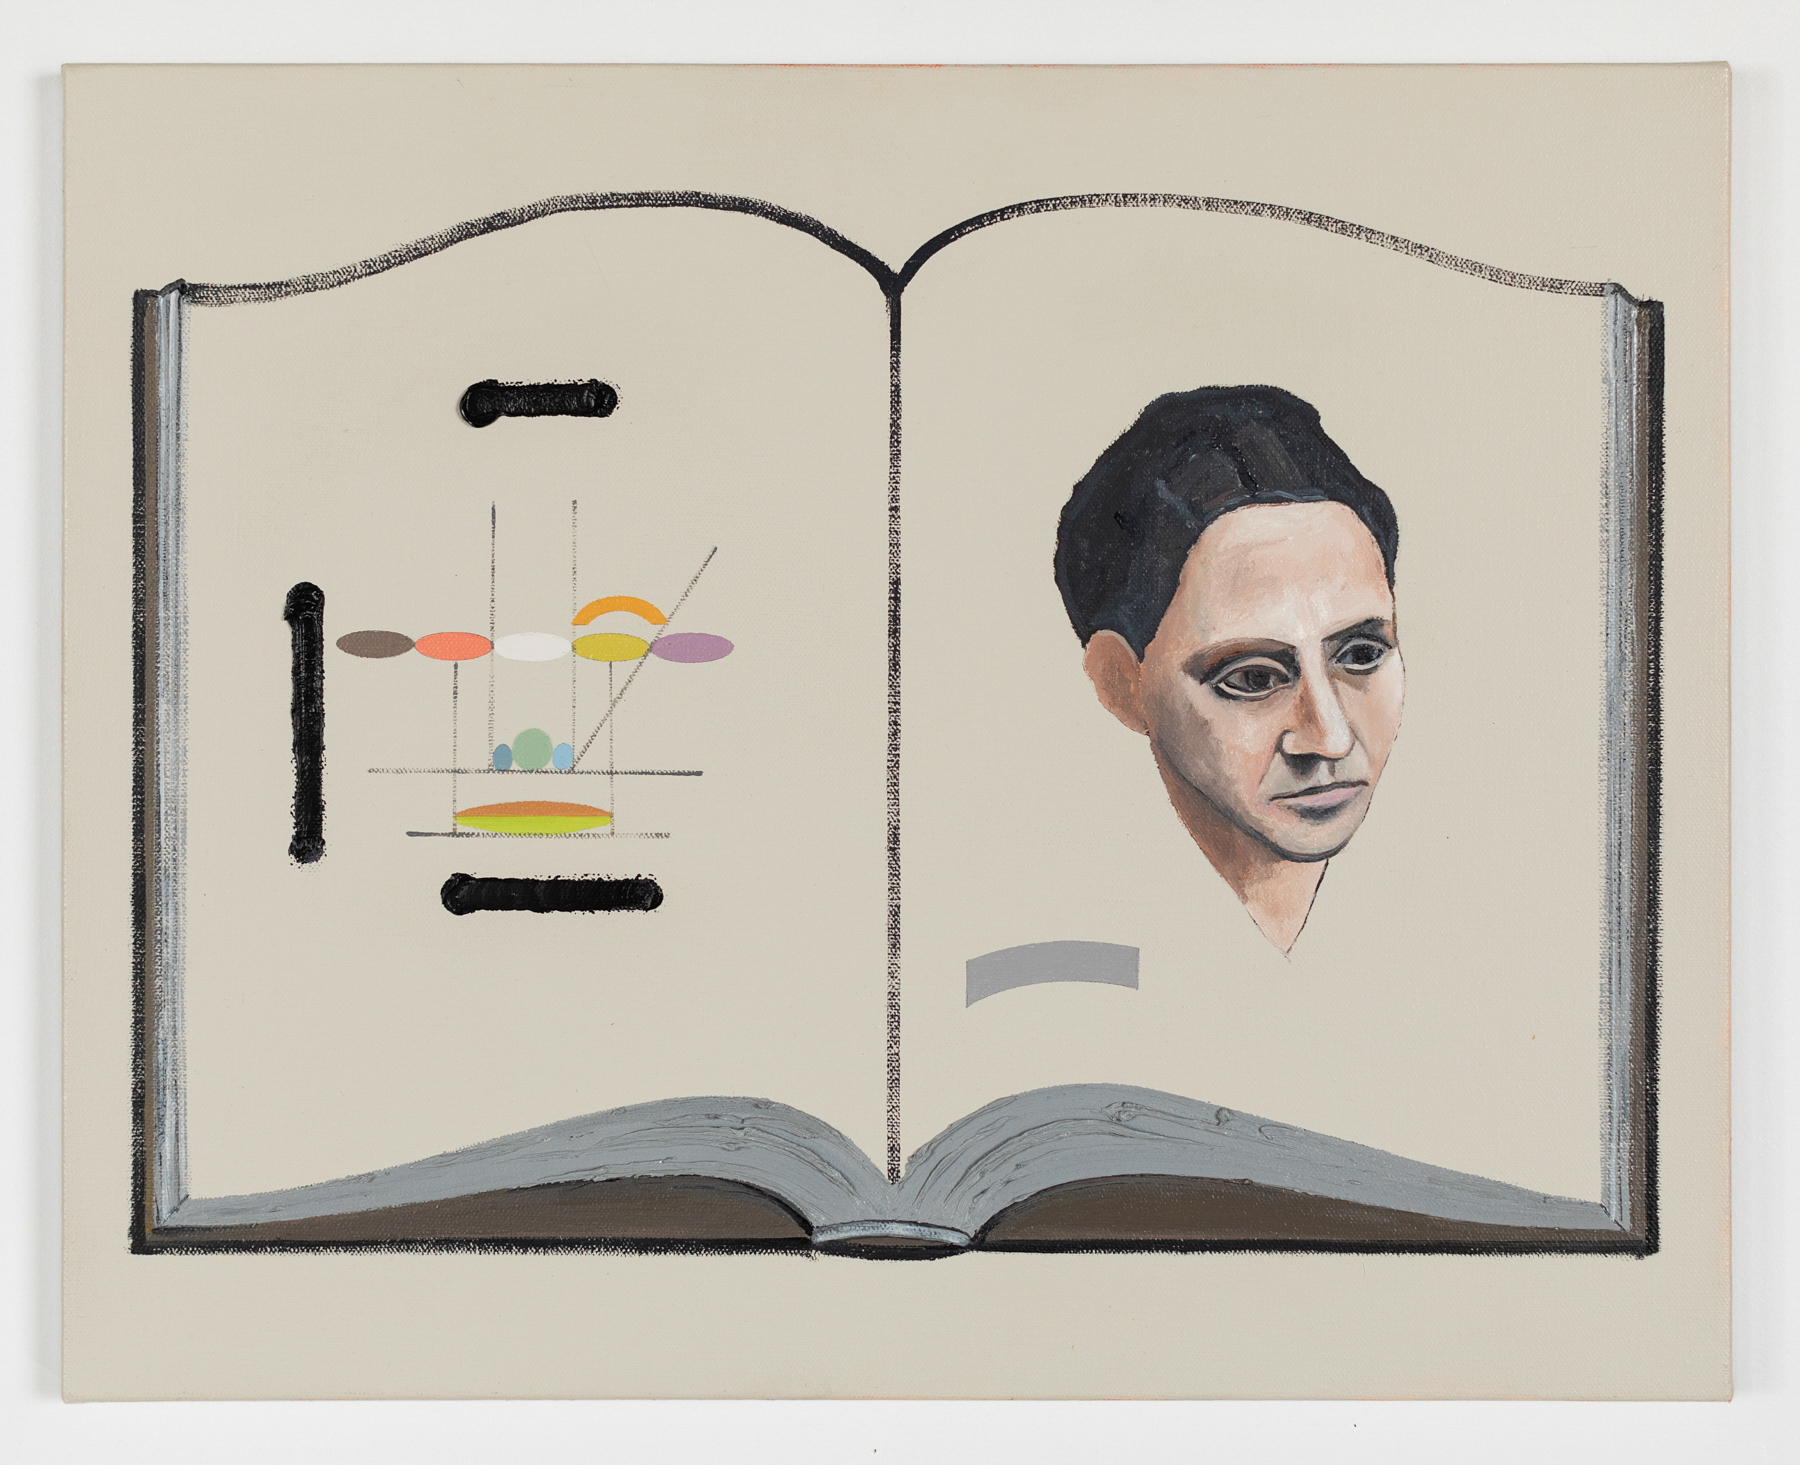 The Book of Portraiture, (Picasso, Gertrude Stein)